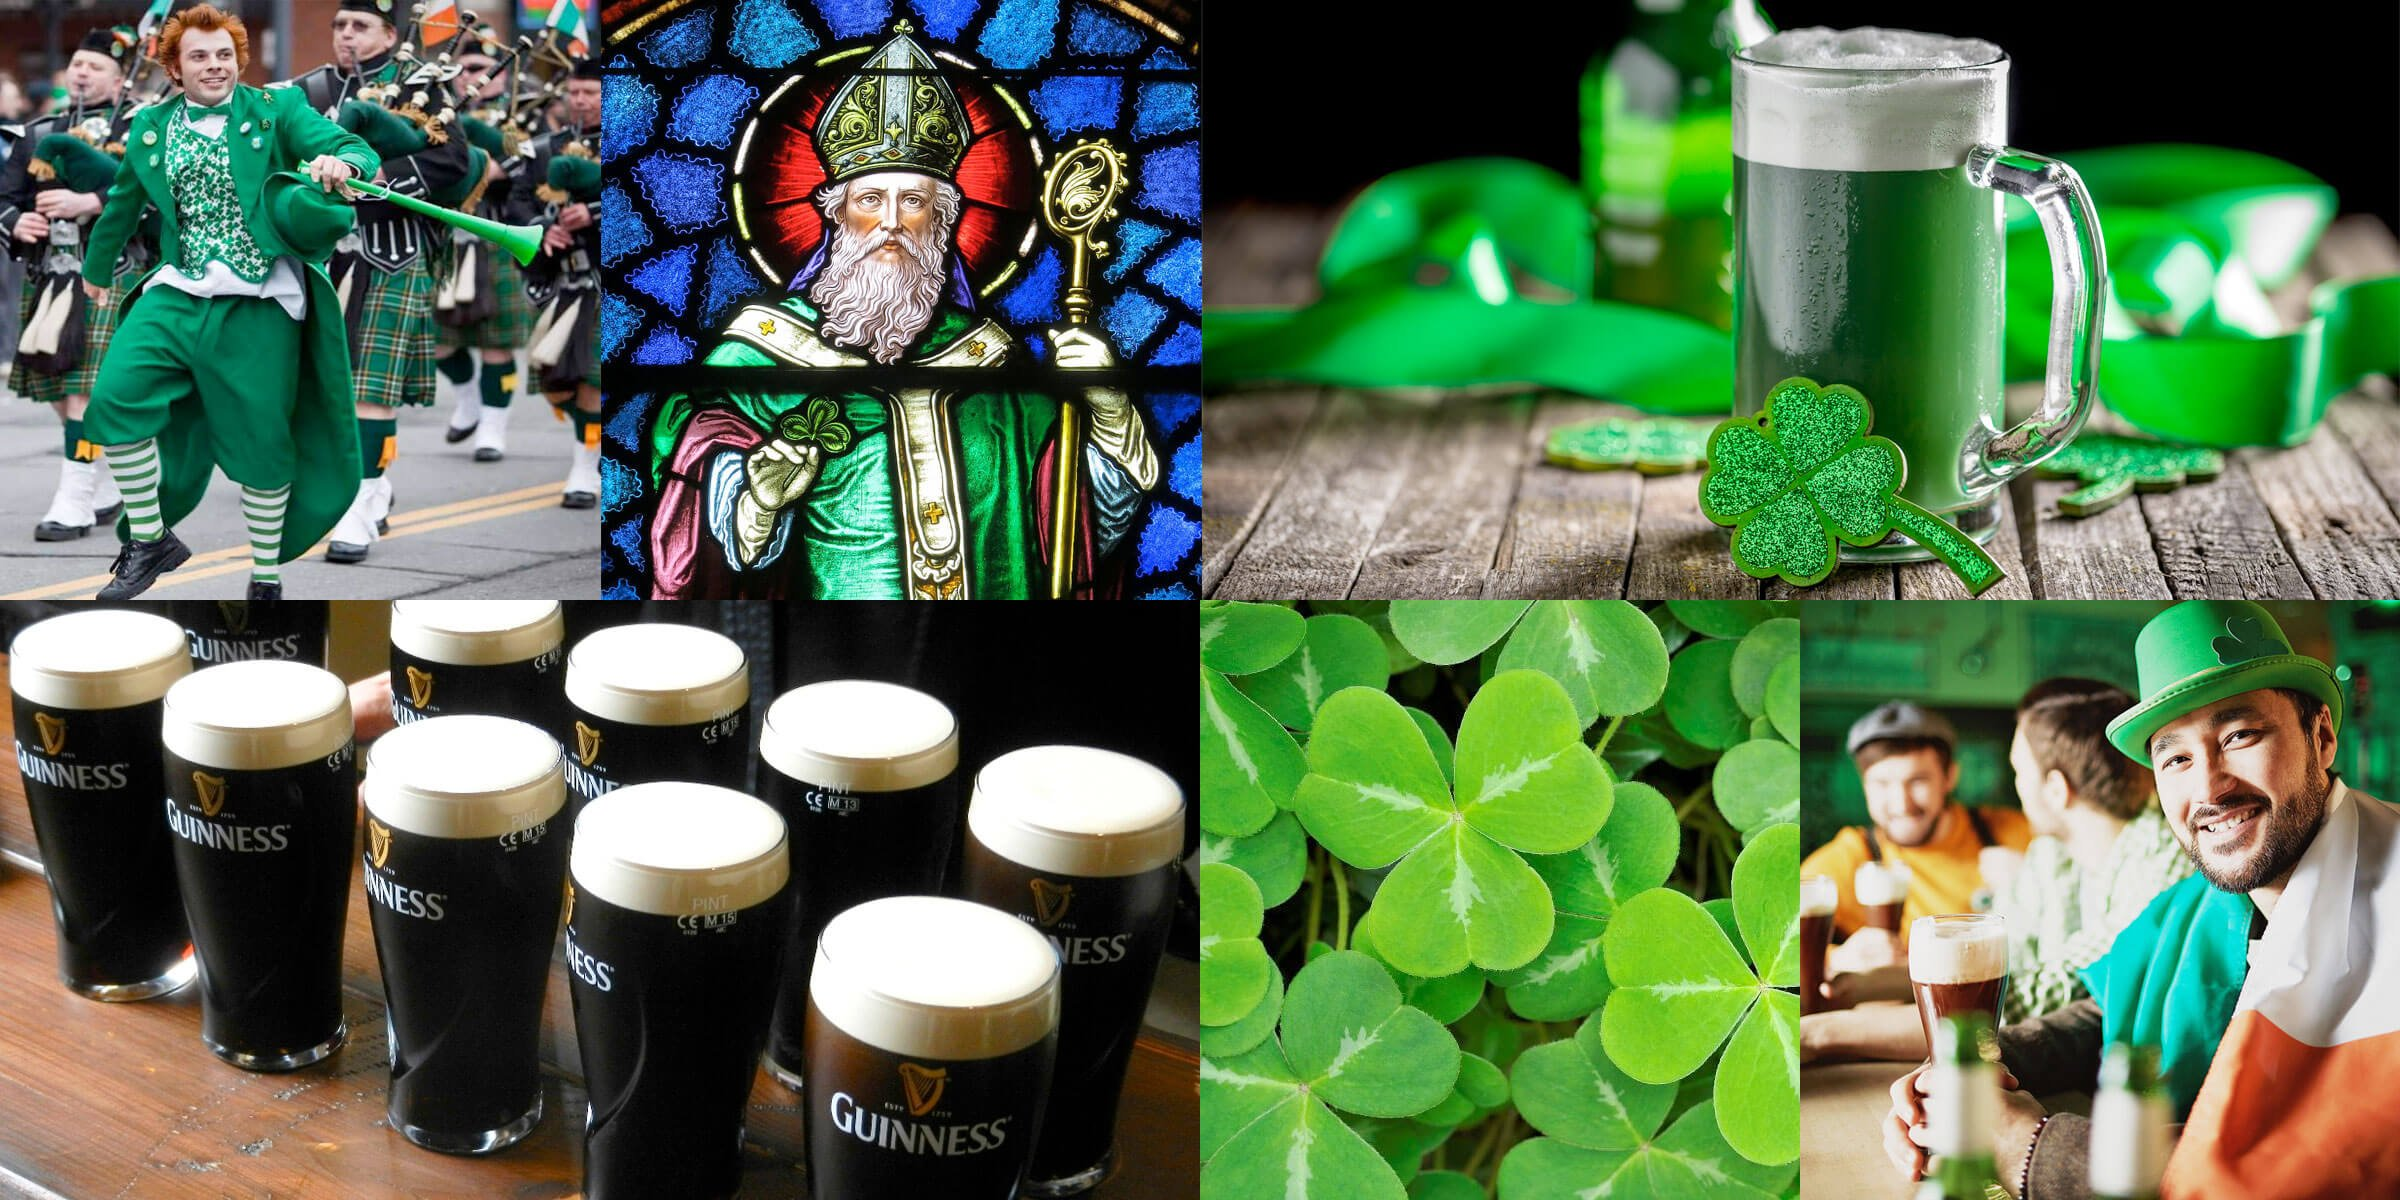 How did St. Patrick's Day, an occasion honoring the patron saint of Ireland, turn into one of the biggest drinking spectacles in America?